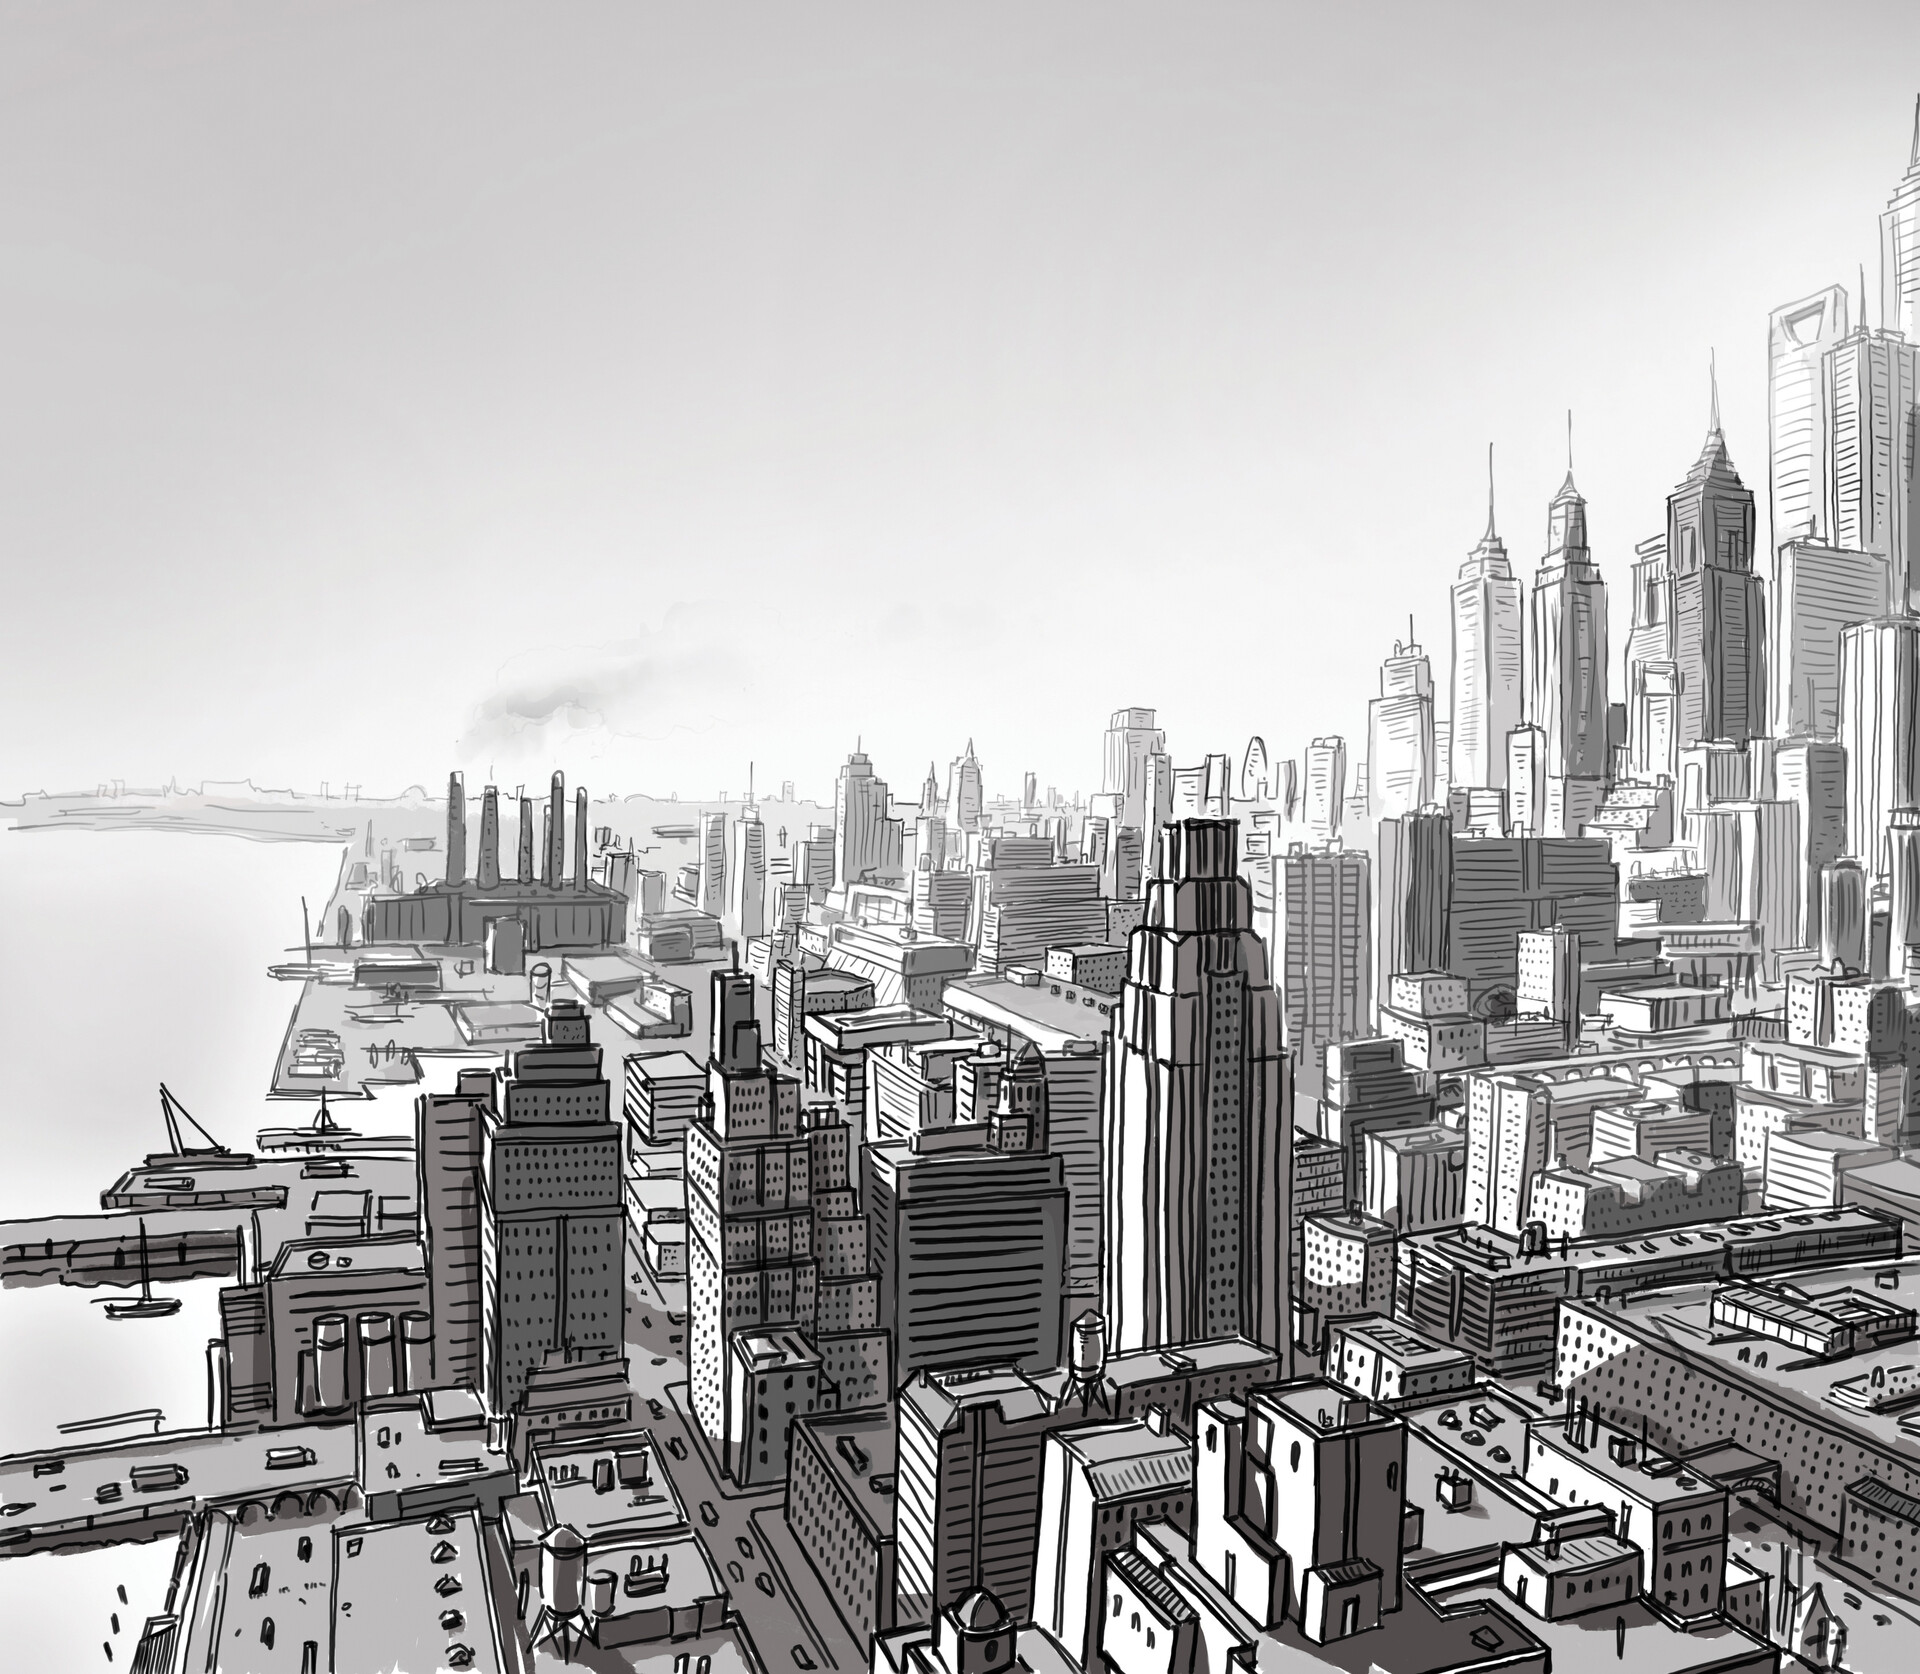 older study drawing of 1920s New York - digging this up in some folder gave me the idea to make a new drawing out of it. In the end I redid the whole city, but it inspired me nevertheless.